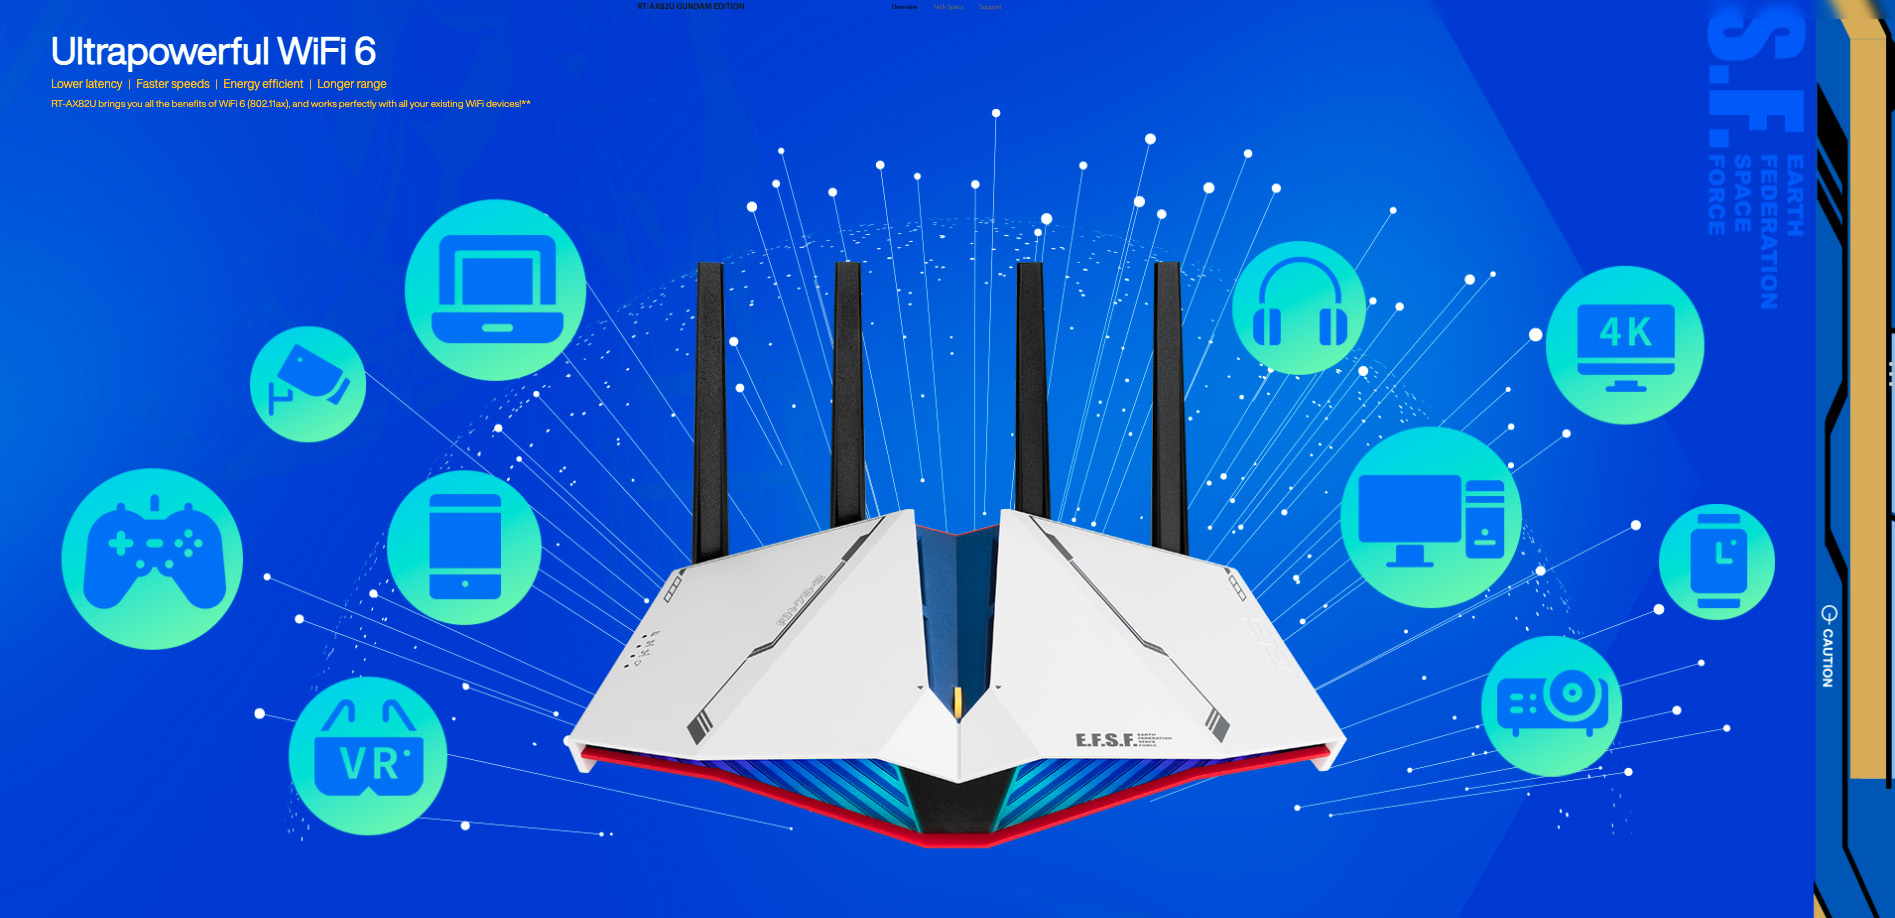 ASUS Wireless AX5400 Dual-Band Wi-Fi 6 Gaming Router